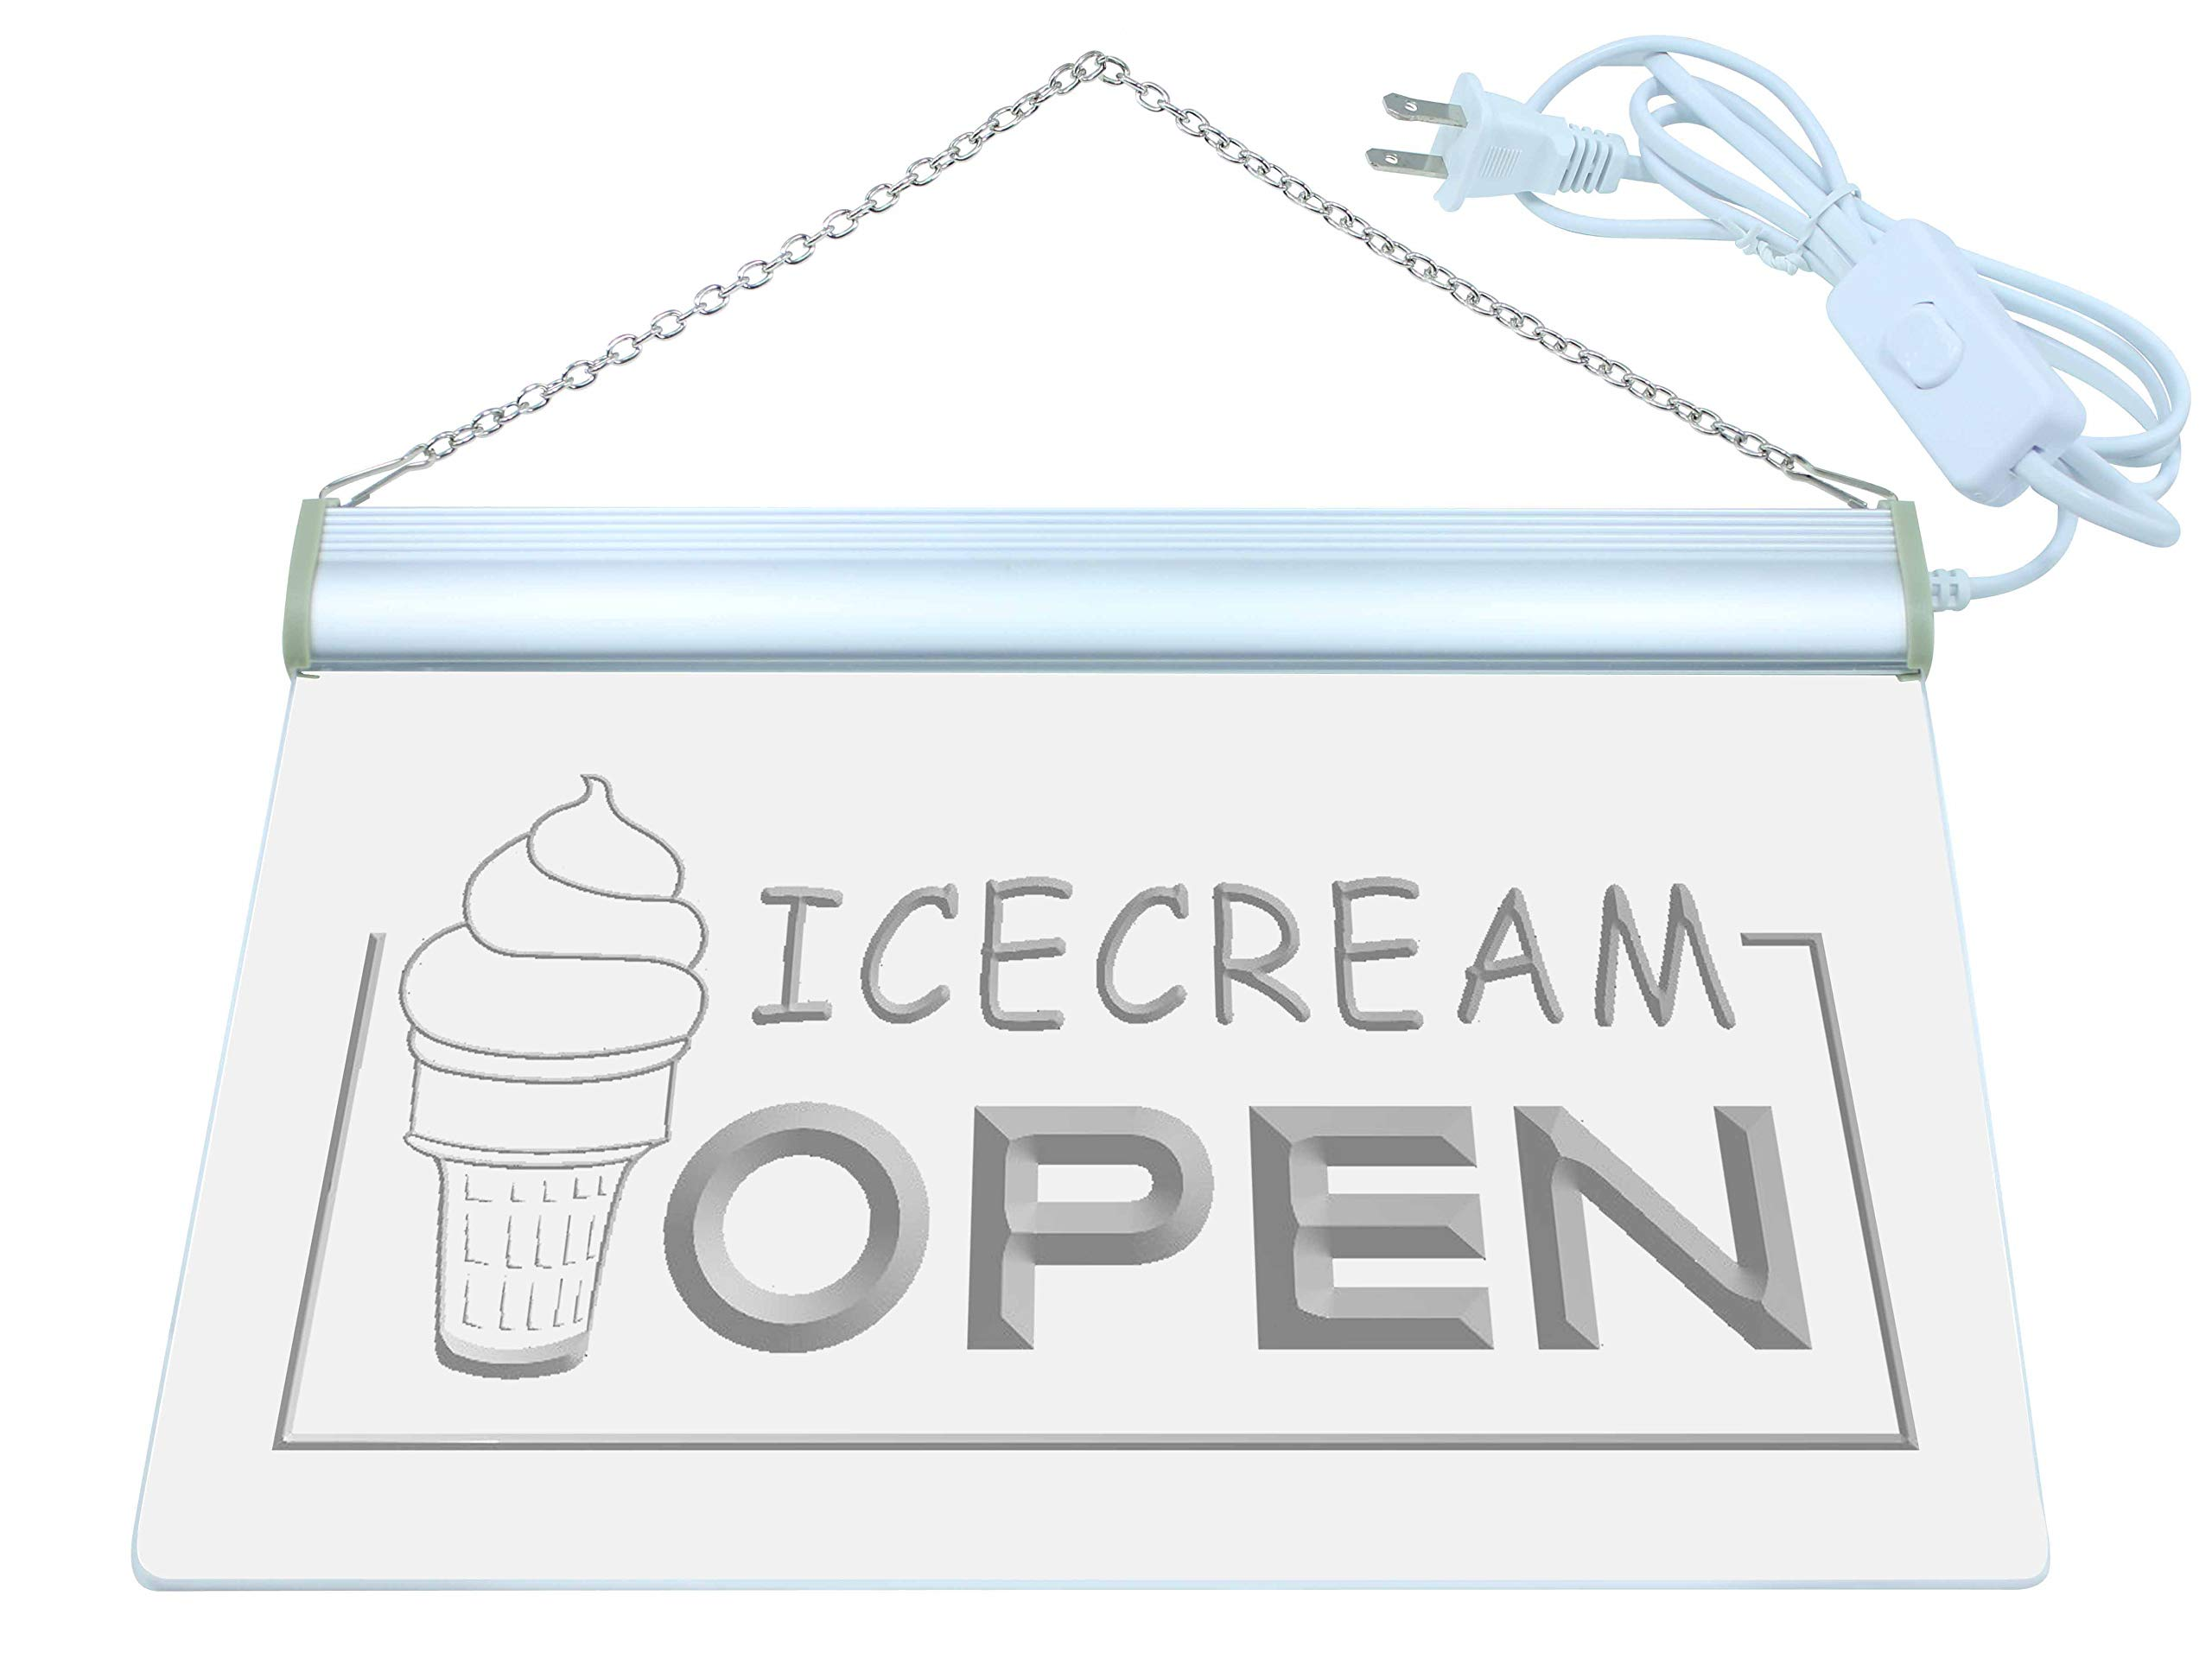 ADV PRO Multi Color m079-c Ice Cream Shop Open Neon LED Sign with Remote Control, 20 Colors, 19 Dynamic Modes, Speed & Brightness Adjustable, Demo Mode, Auto Save Function